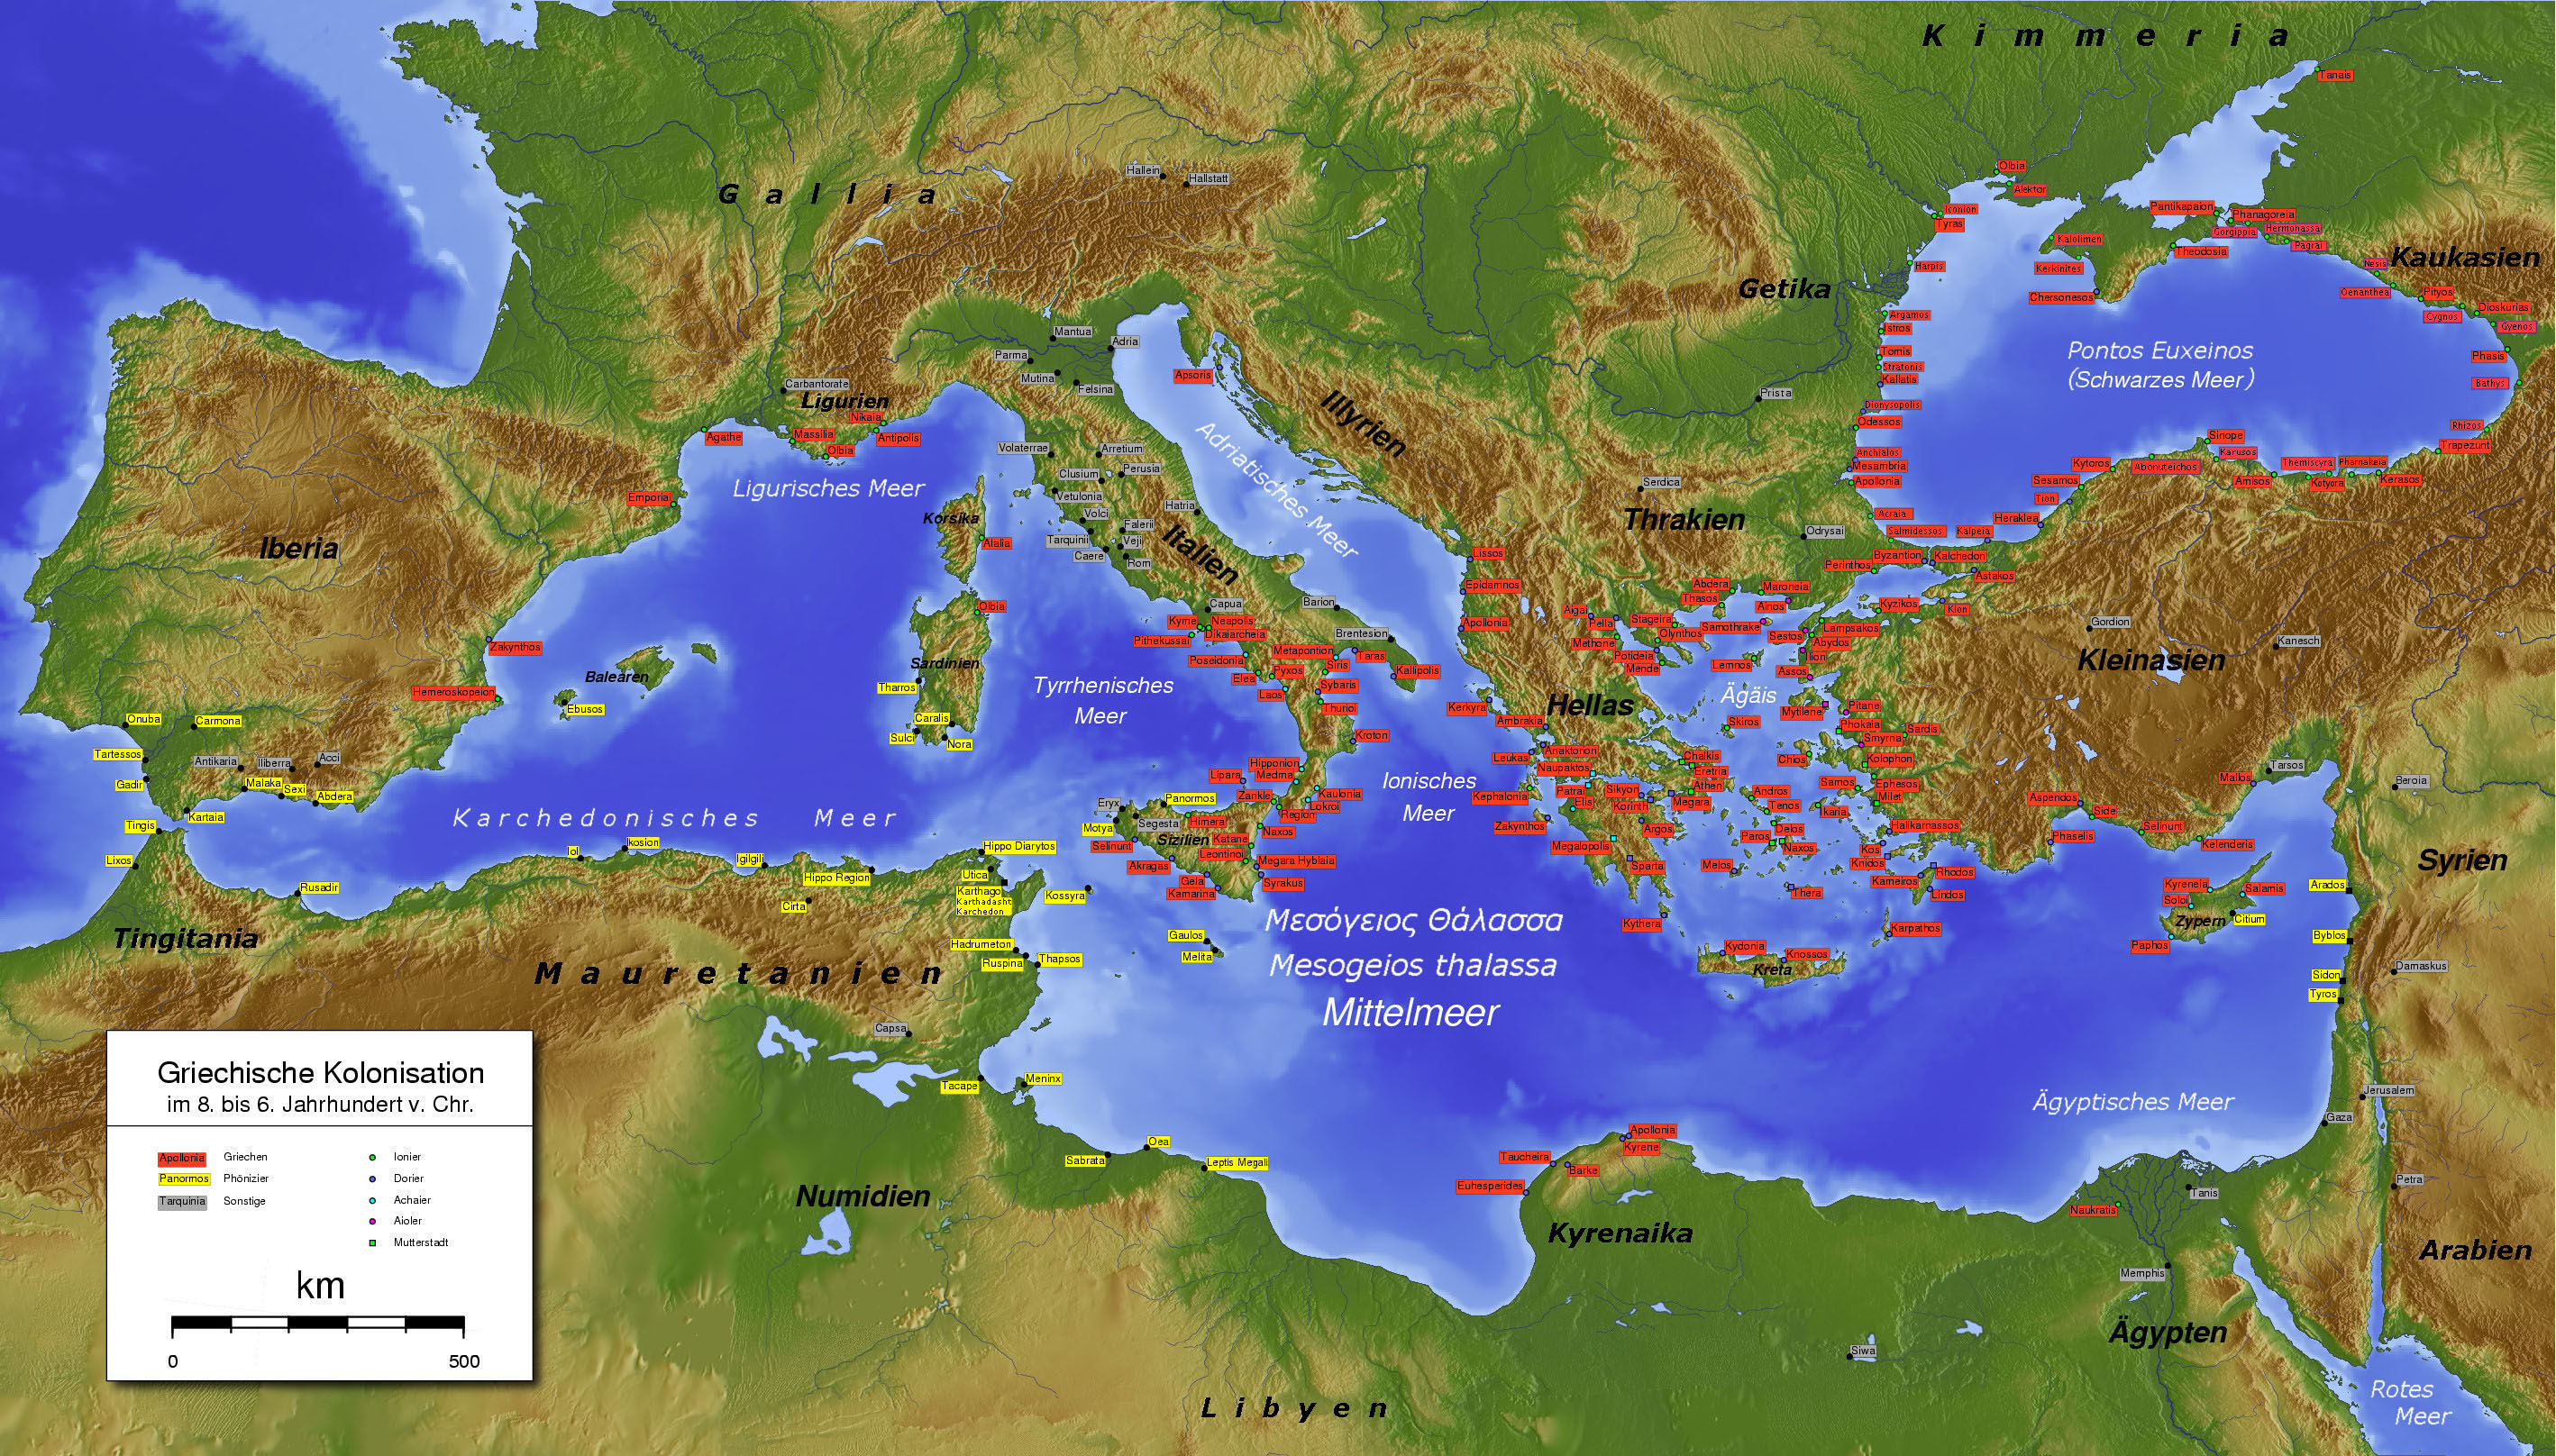 Distribution of Greek colonies also corresponds with that of Hg J2